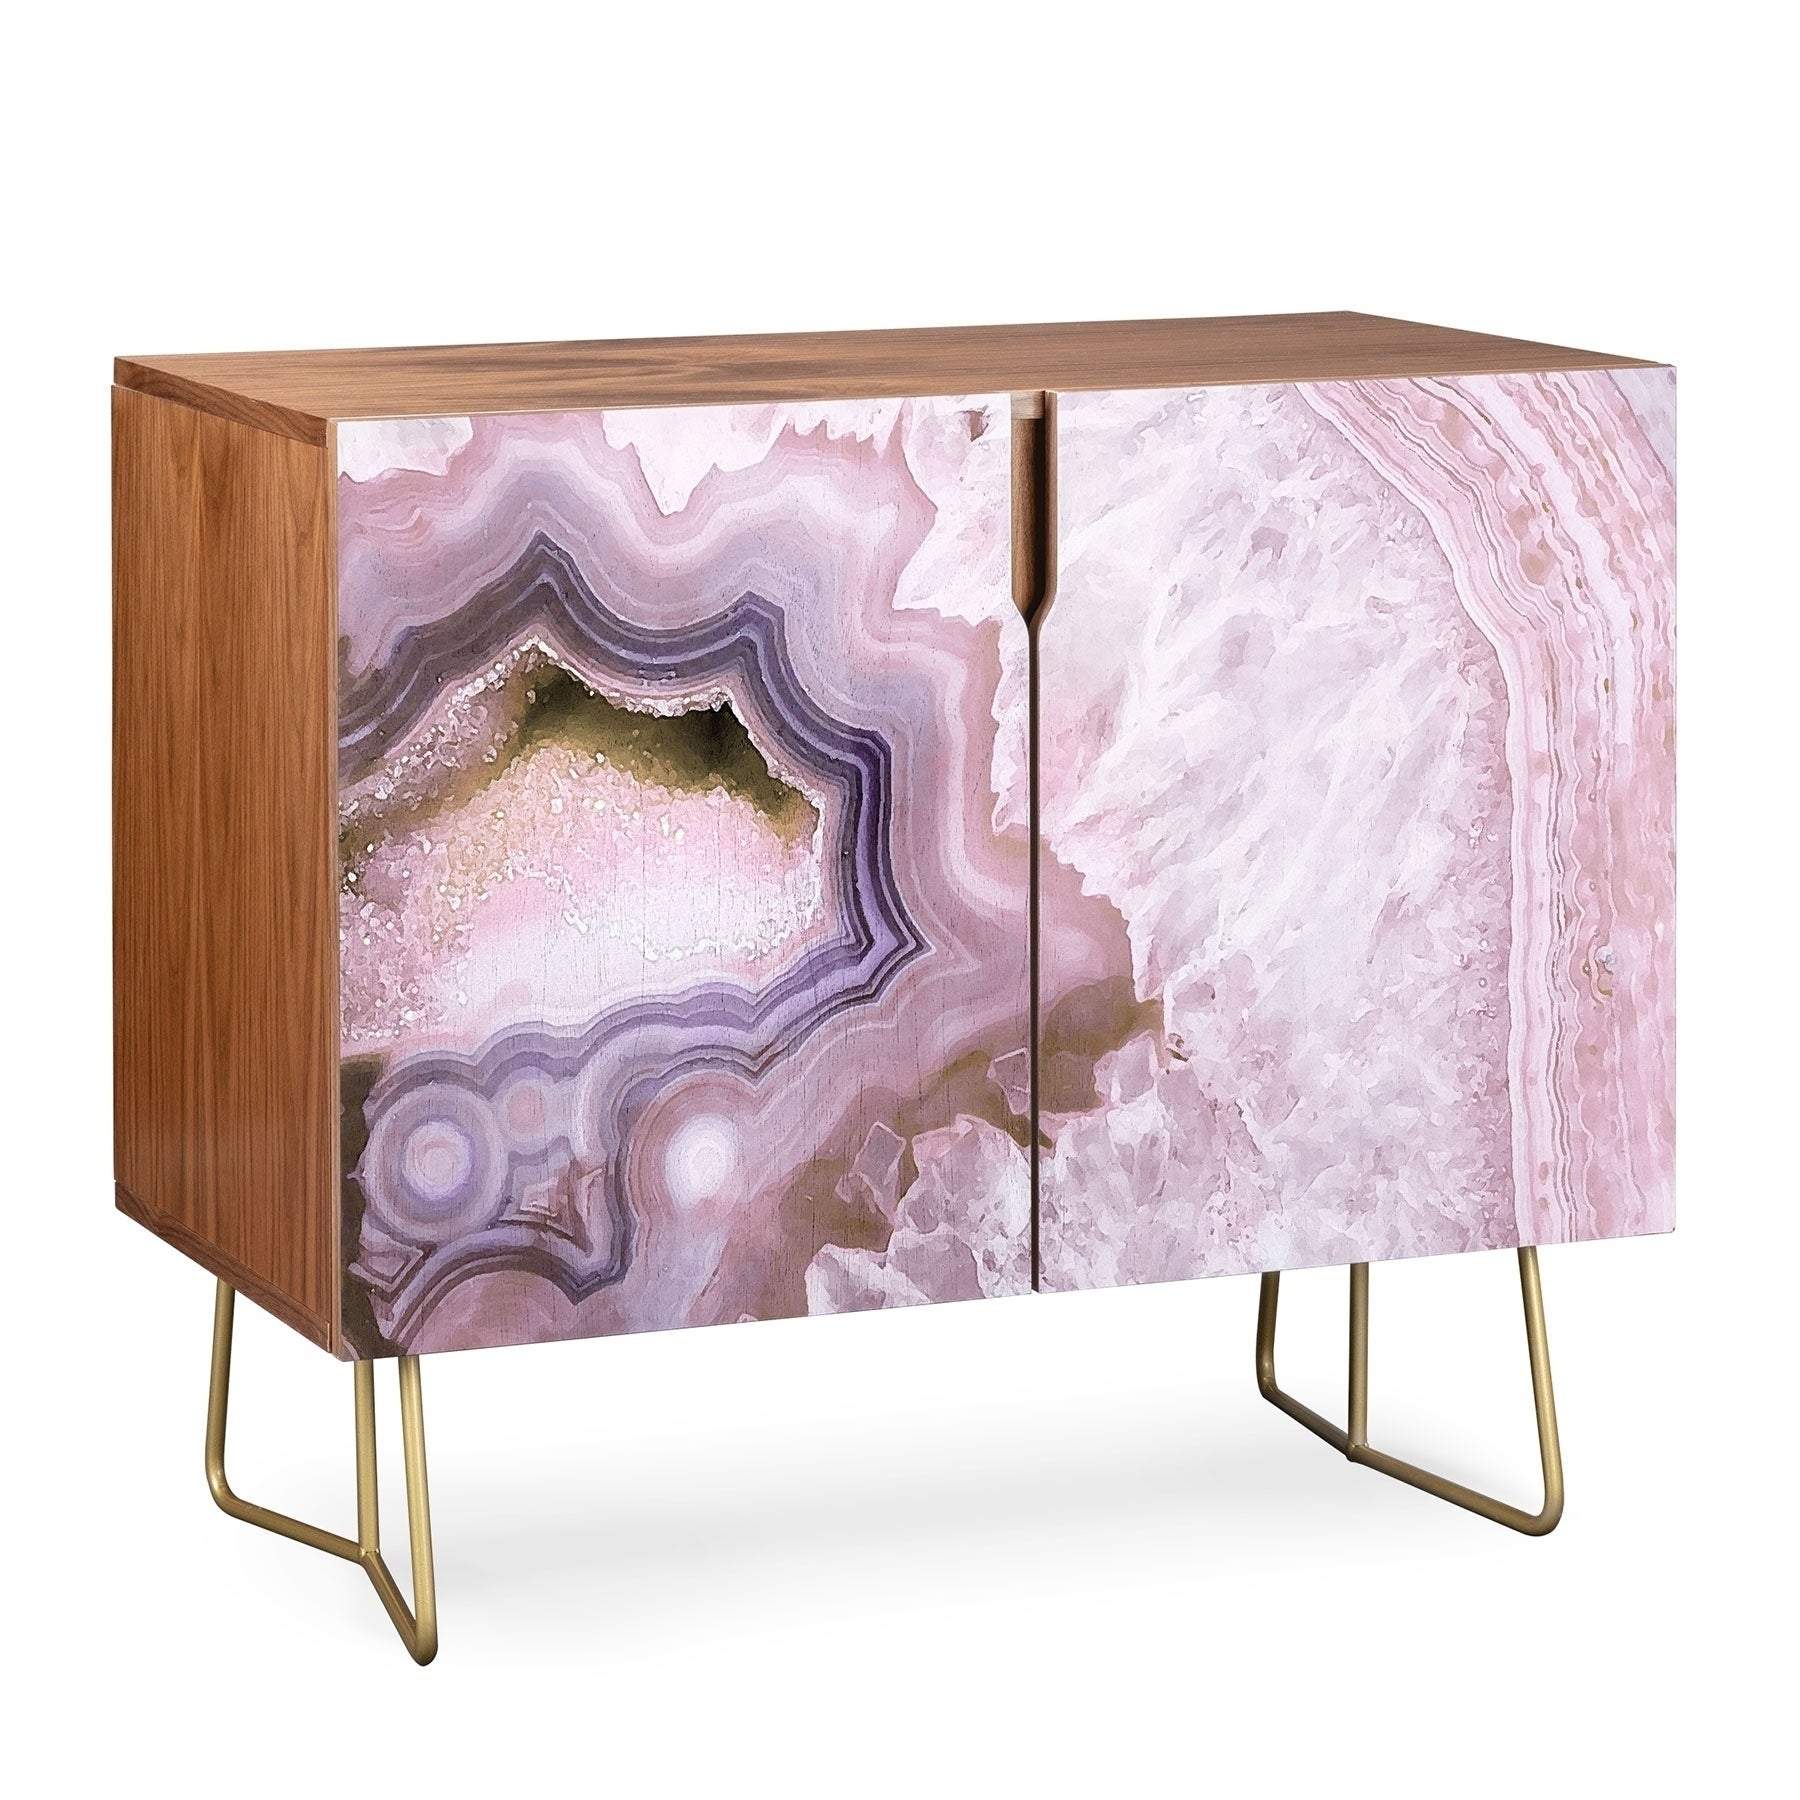 Deny Designs Pale Pink Agate Wood Credenza (3 Leg Options) Inside Copper Leaf Wood Credenzas (Photo 24 of 30)